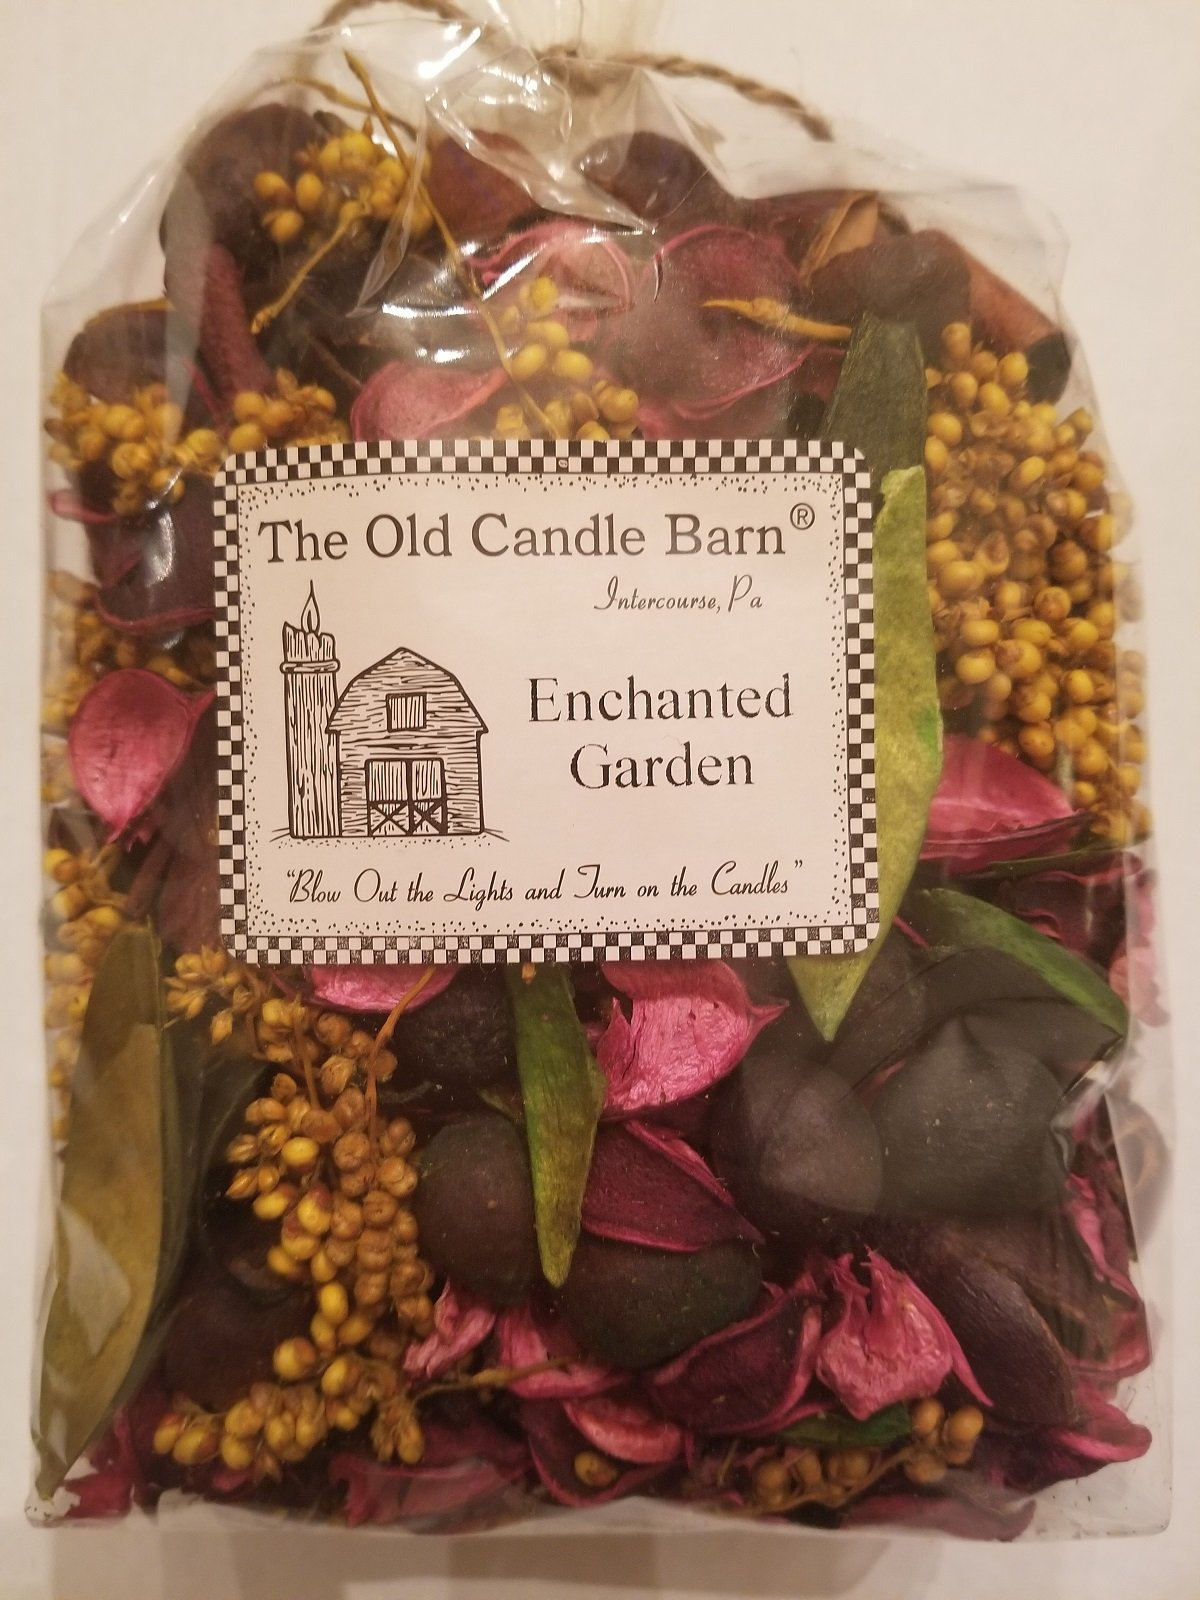 Old Candle Barn Enchanted Garden Potpourri Large Bag - Perfect for Spring and Summer But Can Be Used All Year Long - Decoration or Bowl Filler by Old Candle Barn (Image #1)